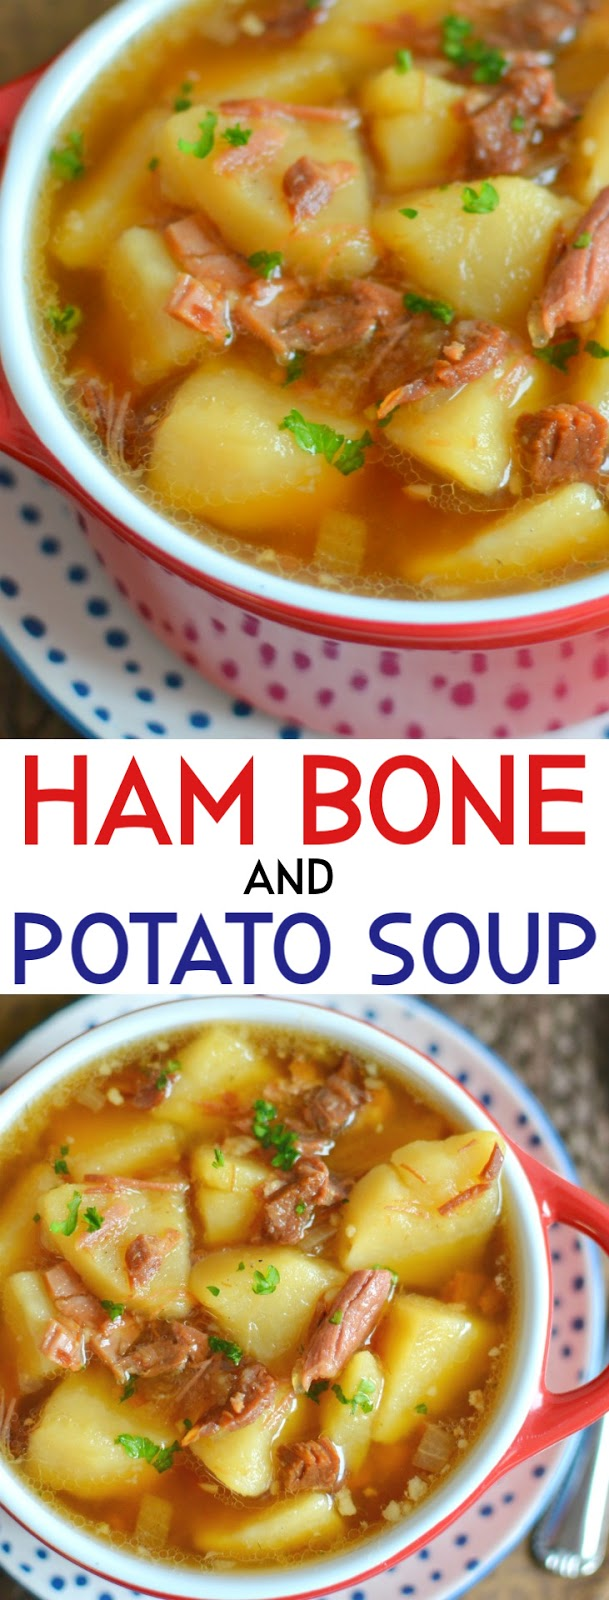 This homemade soup is easy and delicious! It's a great way to use ham leftovers from Thanksgiving, Christmas or Easter and it will warm you up on a cold fall or winter day! Simple ingredients made into pure comfort food!